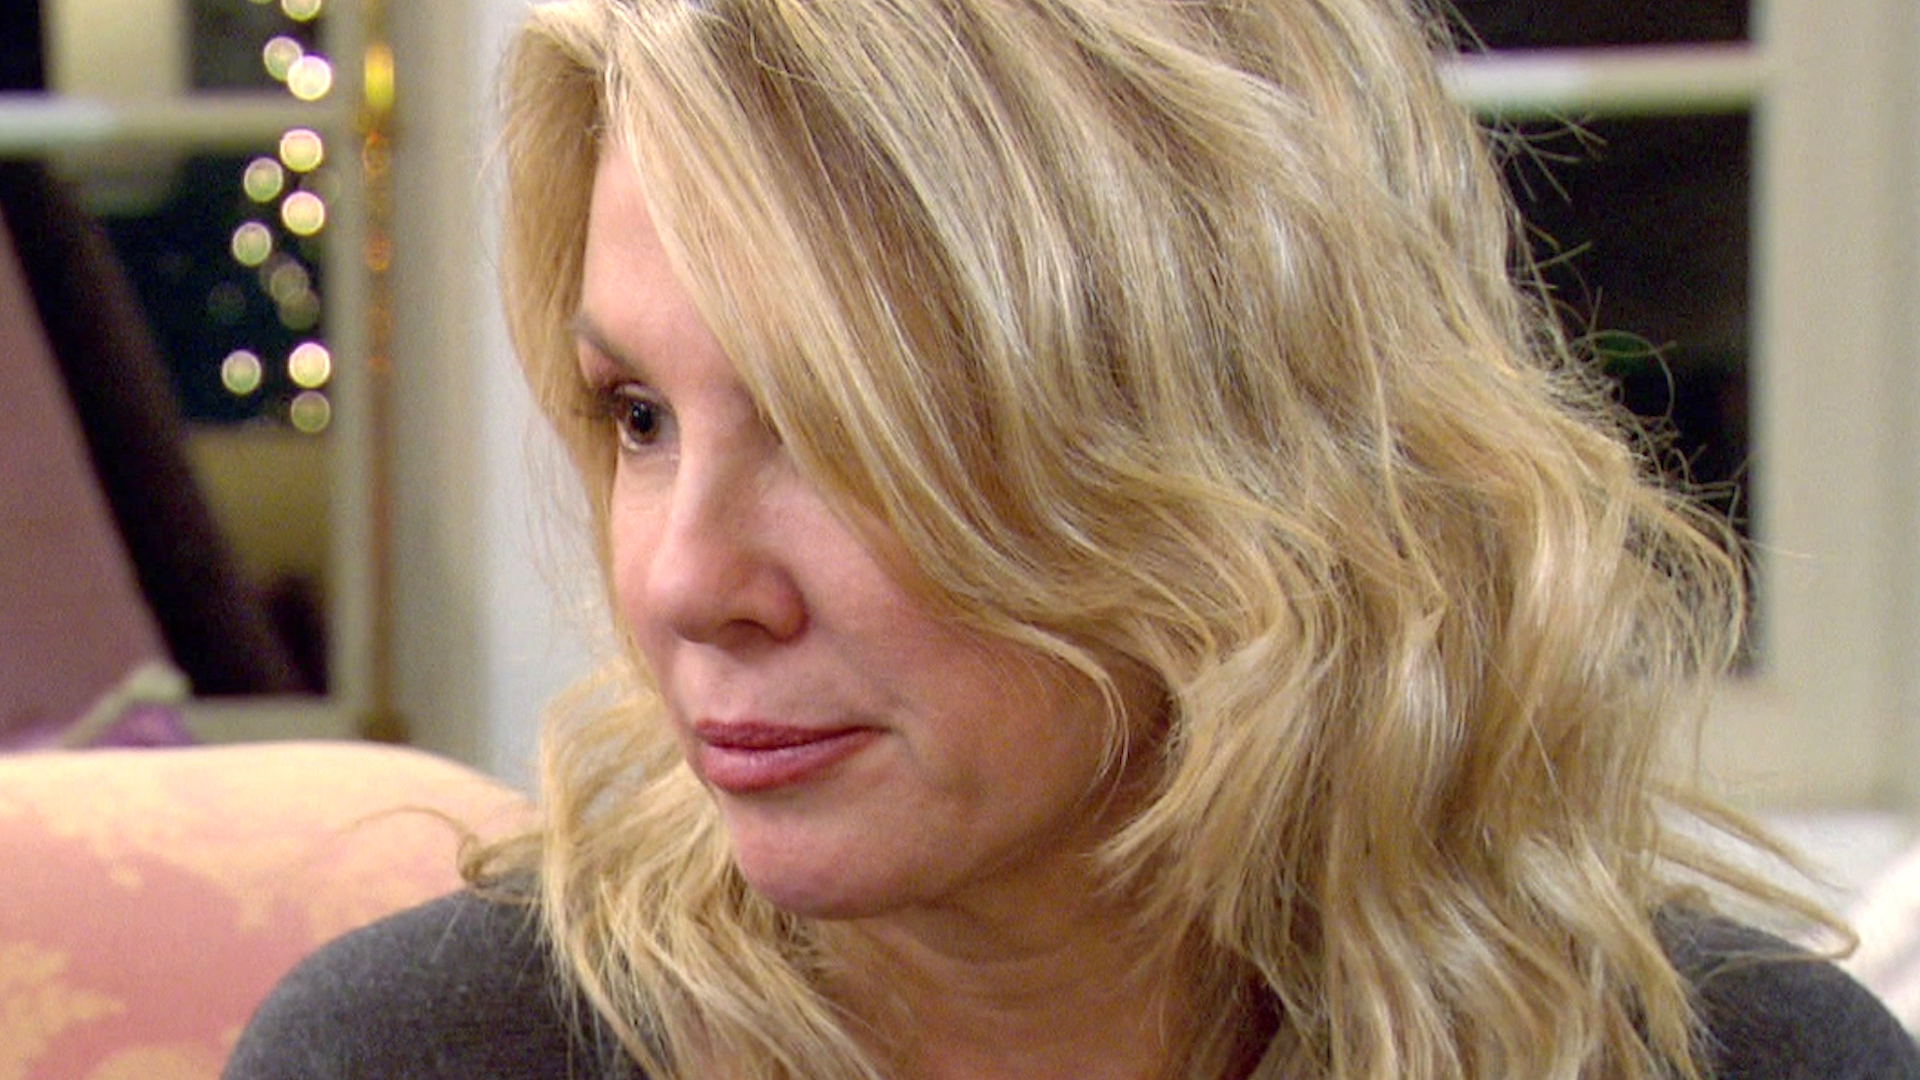 Next on RHONY: It Will Only Get Worse